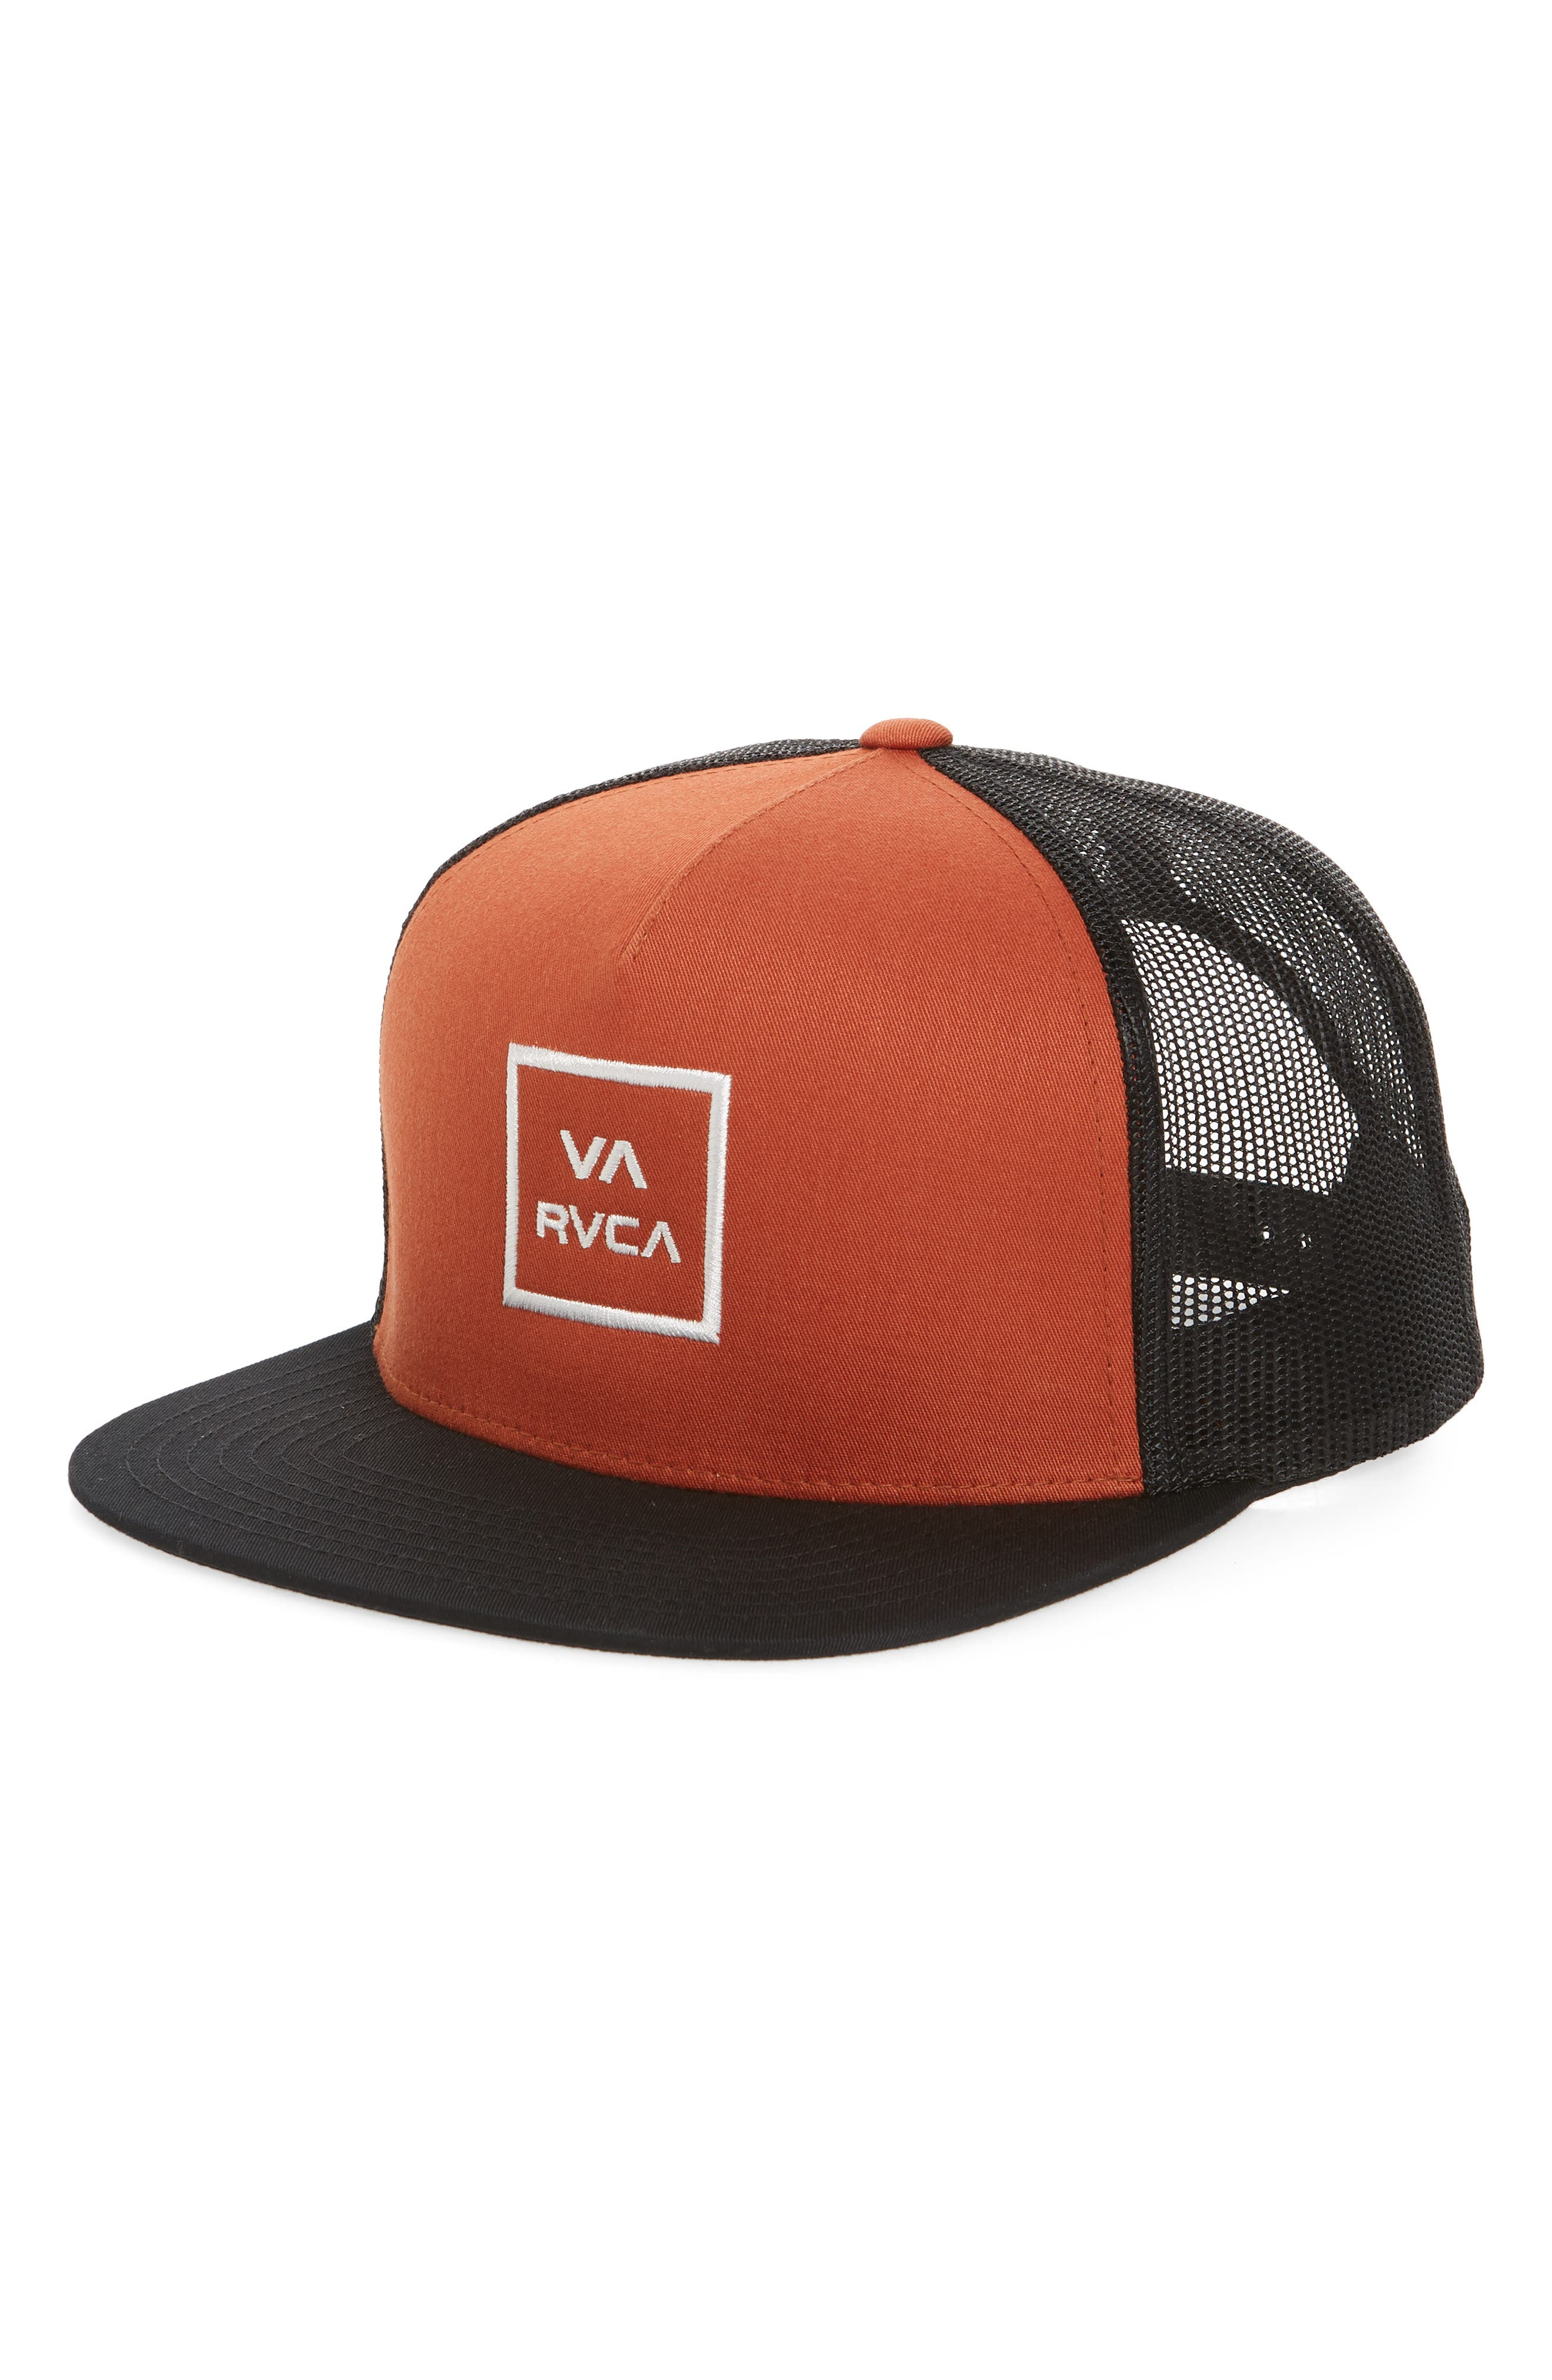 66cd63dbc16f3 buy rvca va all the way trucker iii hat 7bf79 723ff  france mens rvca  snapback caps hats nordstrom 8faa9 77703